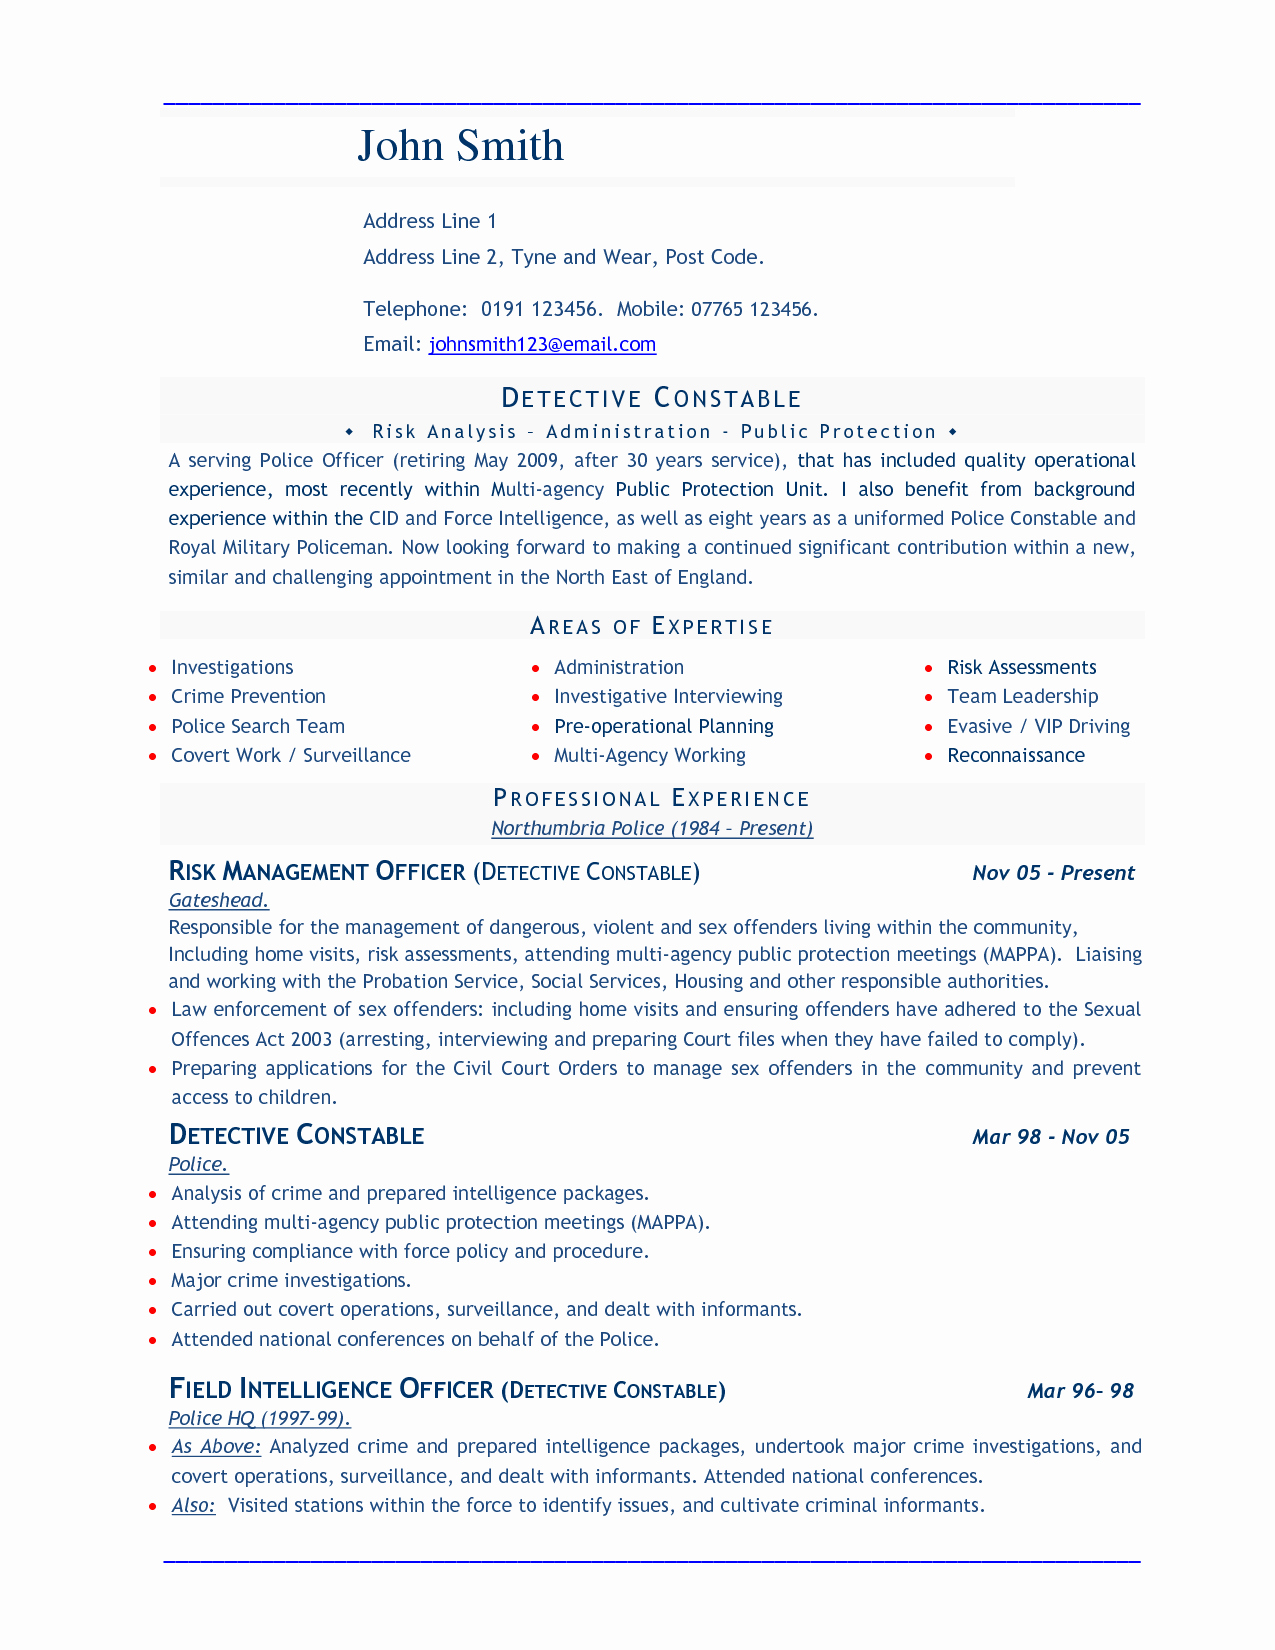 Resume Reference Template Microsoft Word Beautiful Quick Reference Guide Template Word